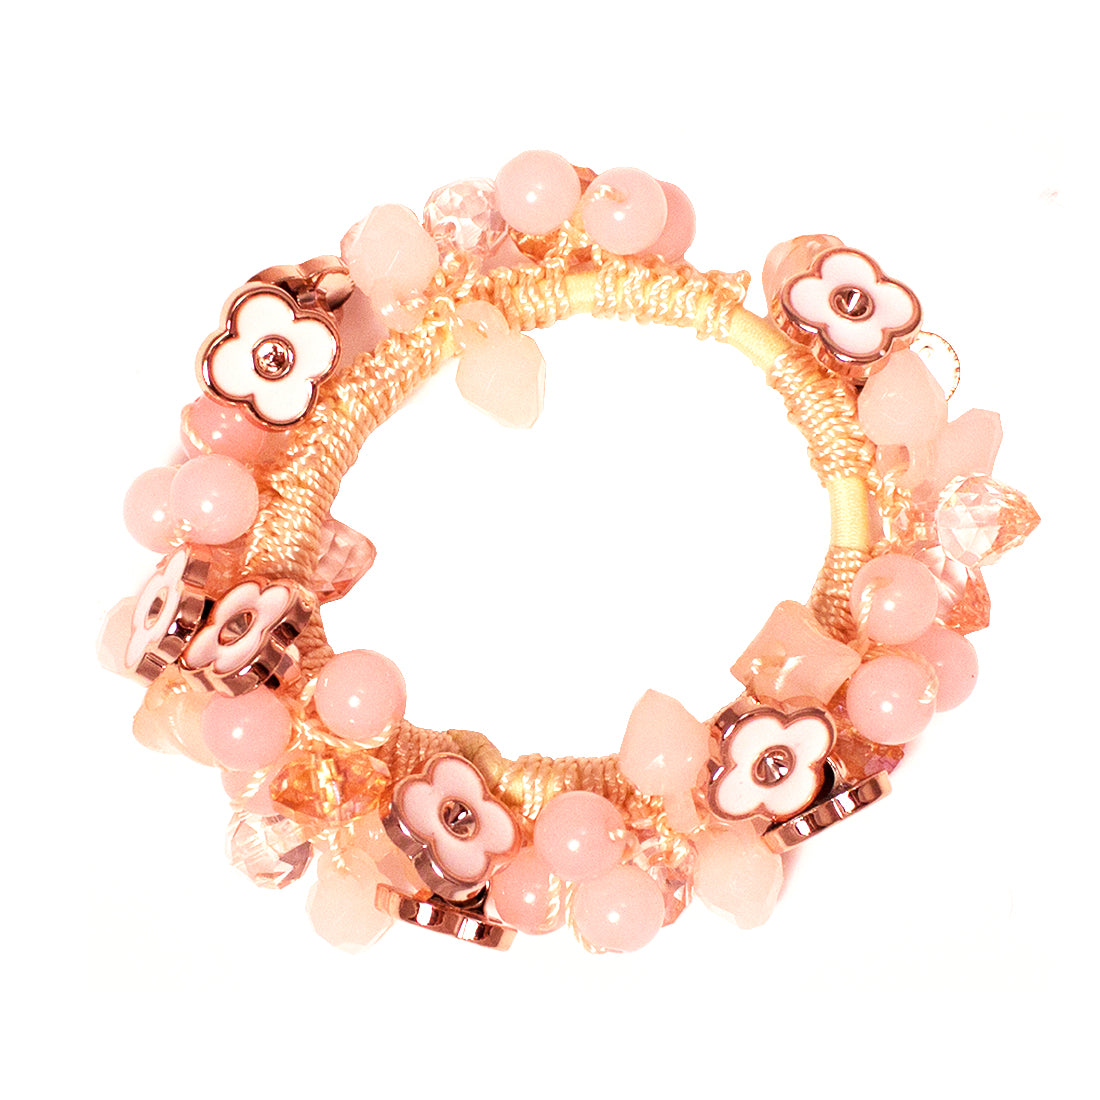 Beaded Ponytailer-Pink Crystals/Flowers